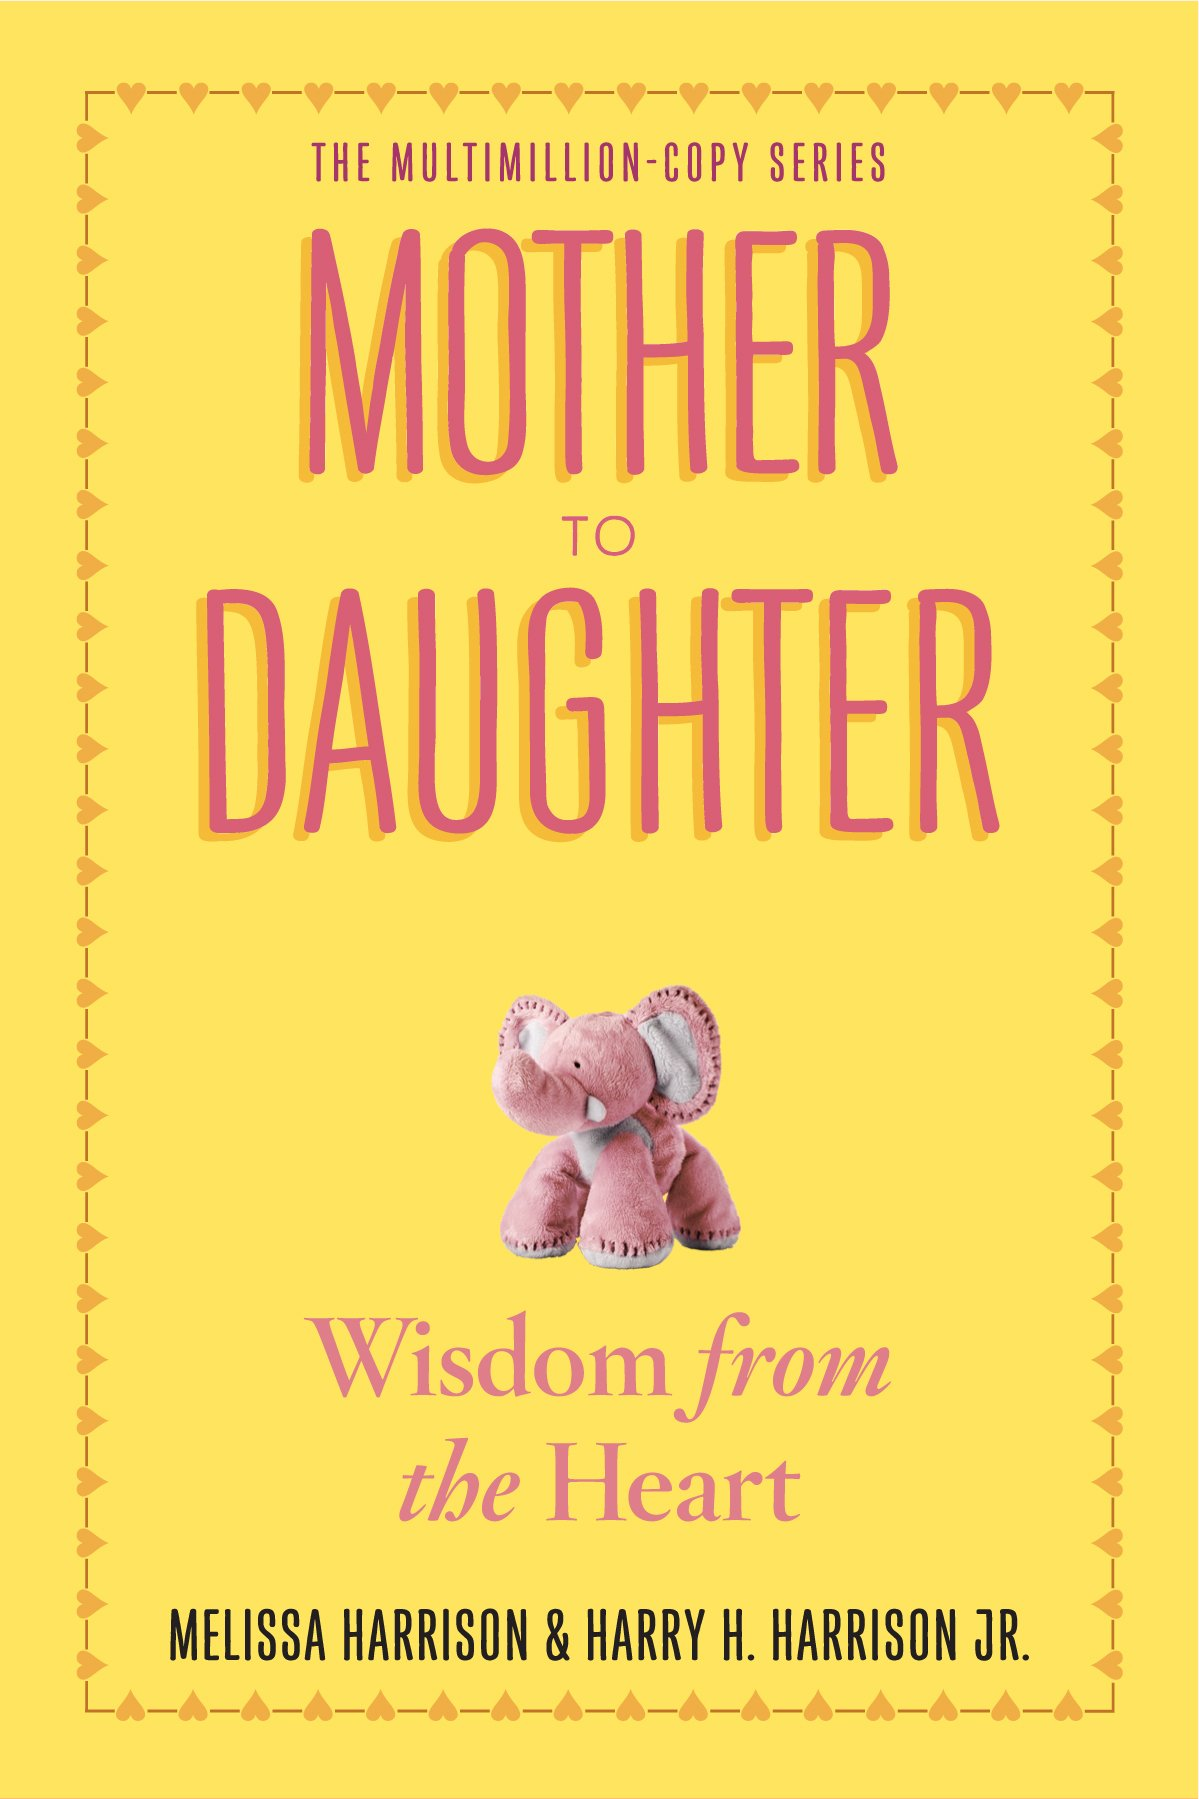 Mother Daughter Revised Shared Wisdom product image